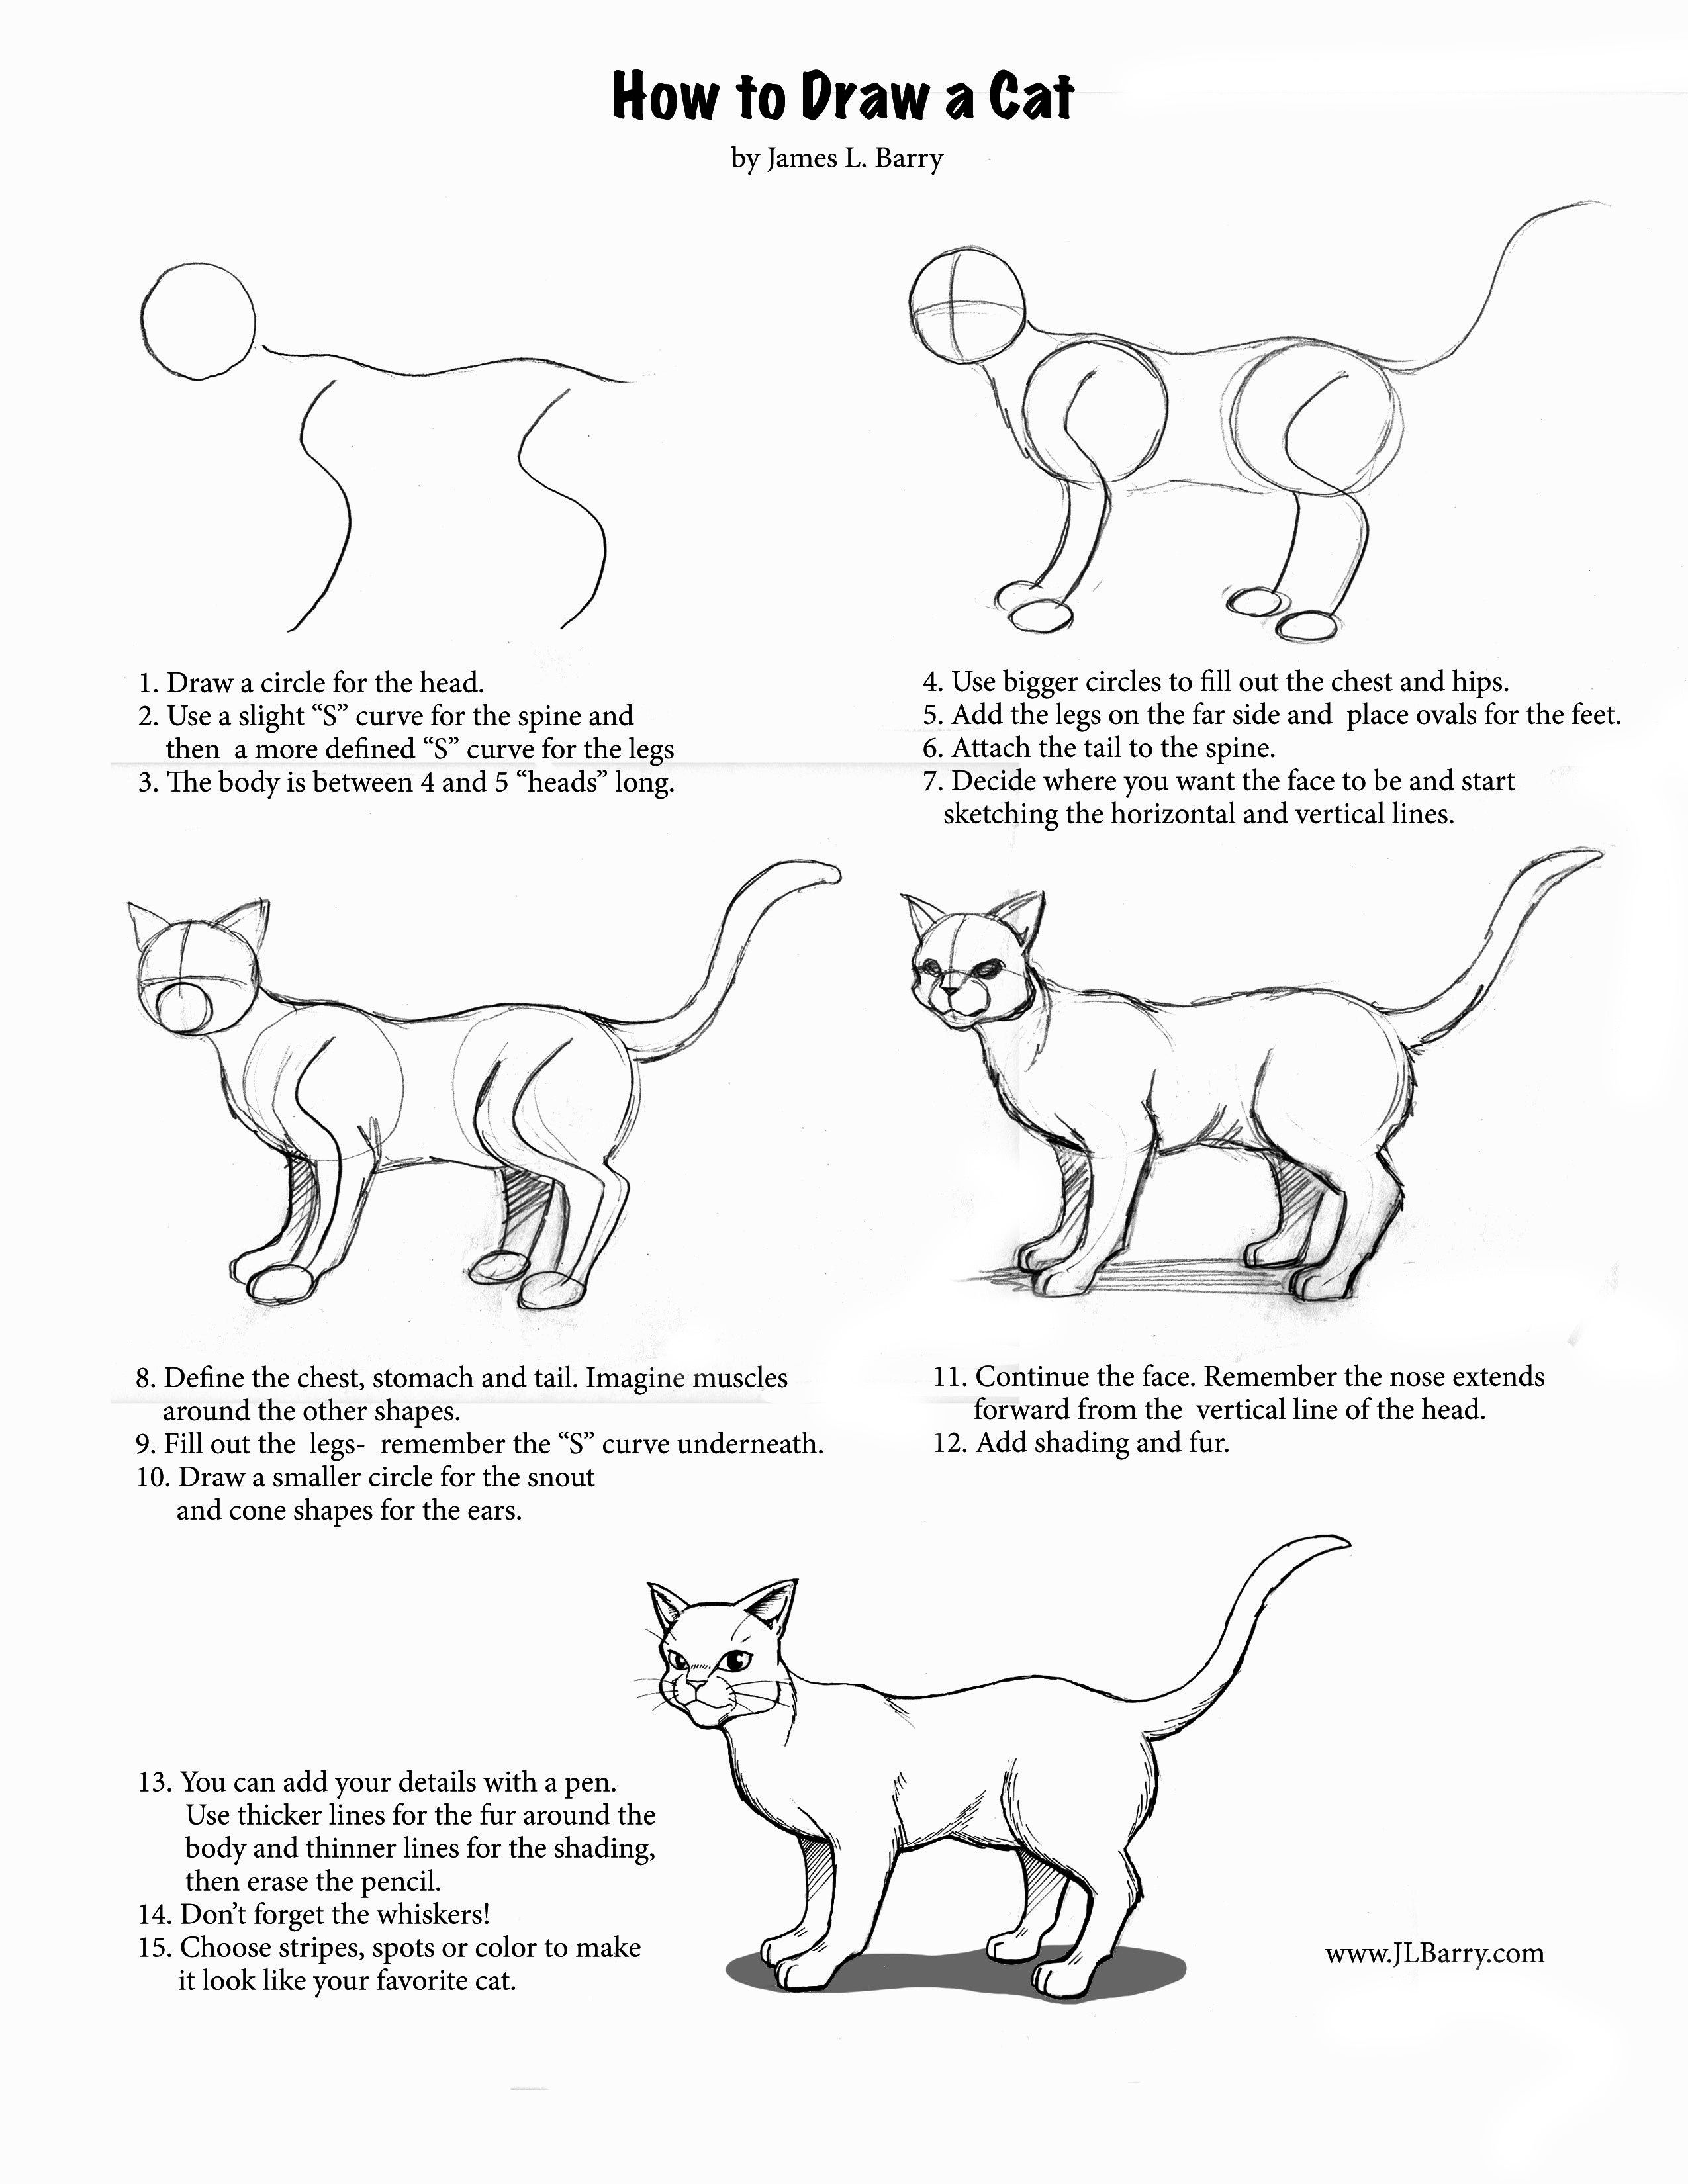 How To Draw A Cat Warrior Cat Drawings Cat Drawing Tutorial Animal Drawings